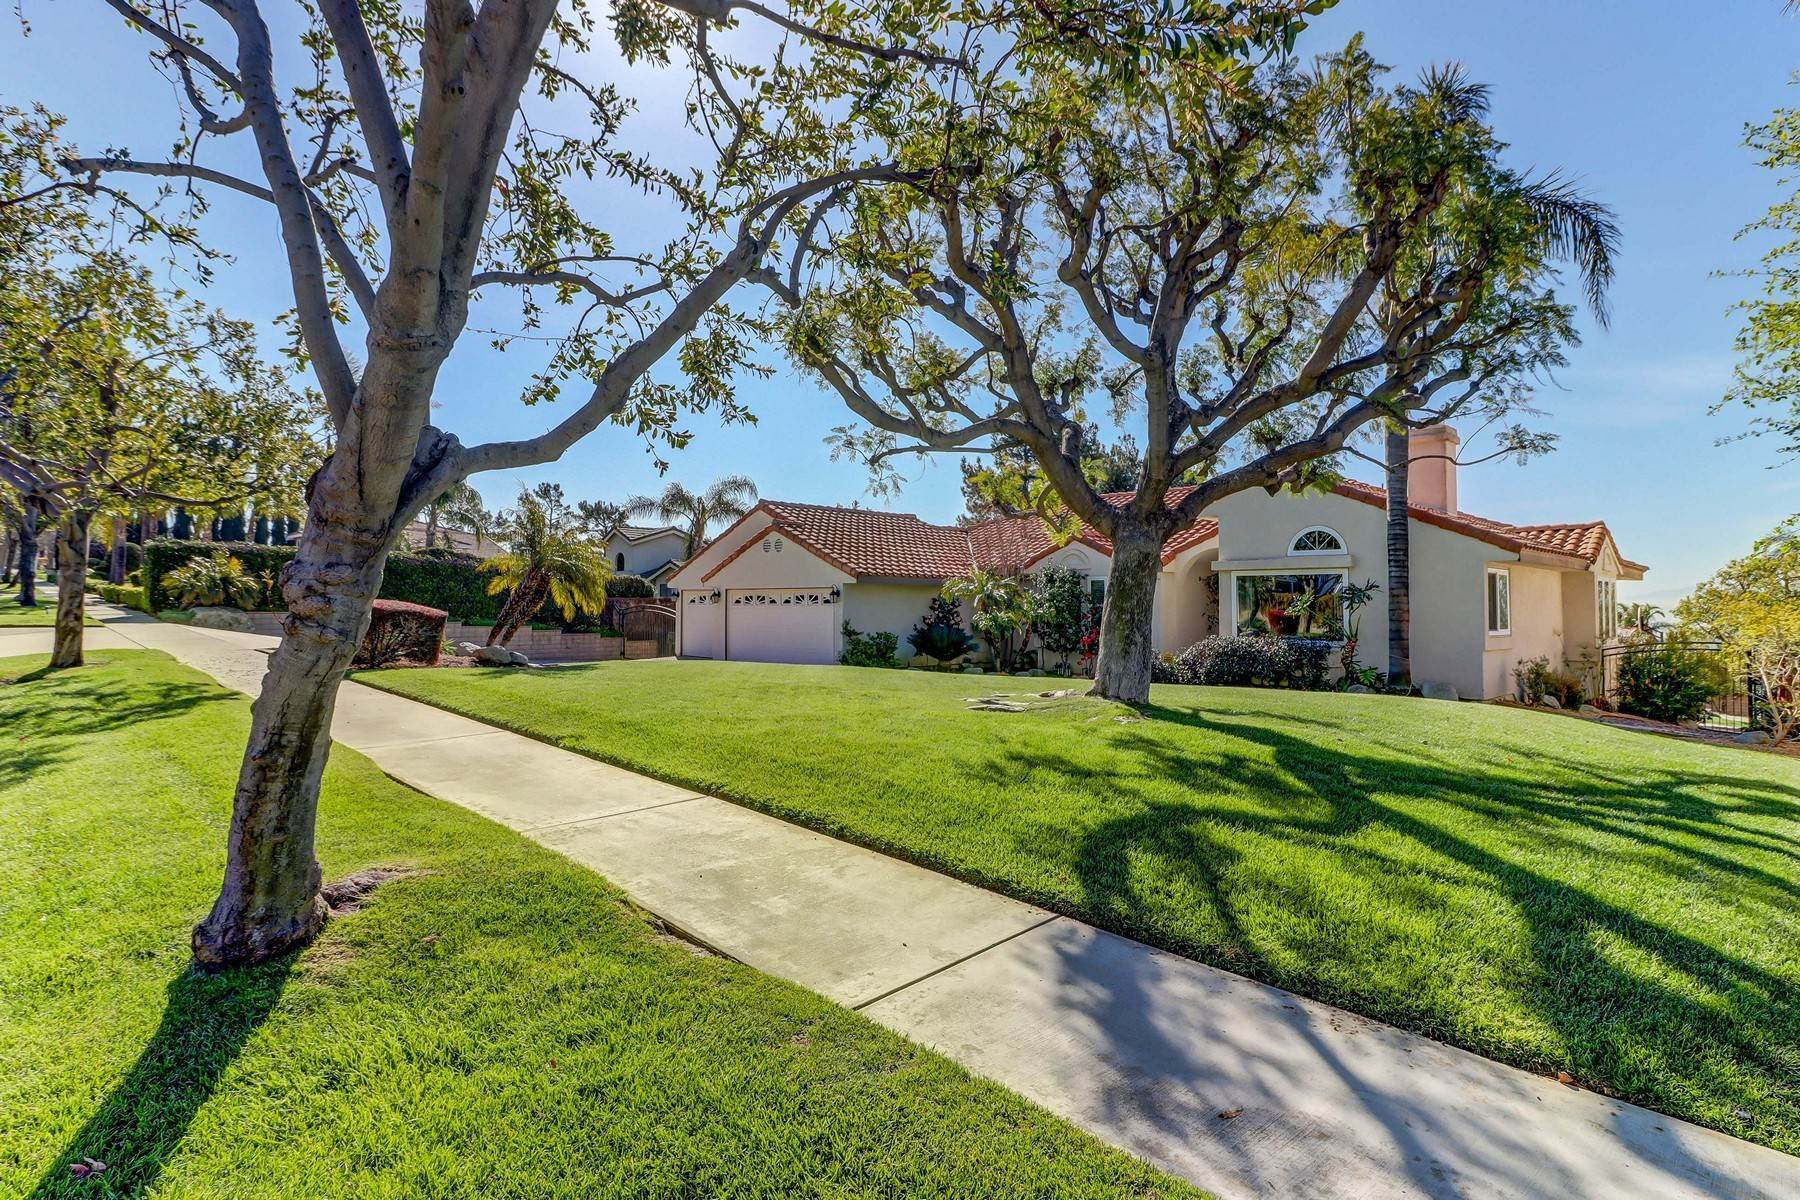 2. Single Family Homes for Sale at 10329 Vista Grove Street, Rancho Cucamonga, CA 91737 10329 Vista Grove Street Rancho Cucamonga, California 91737 United States